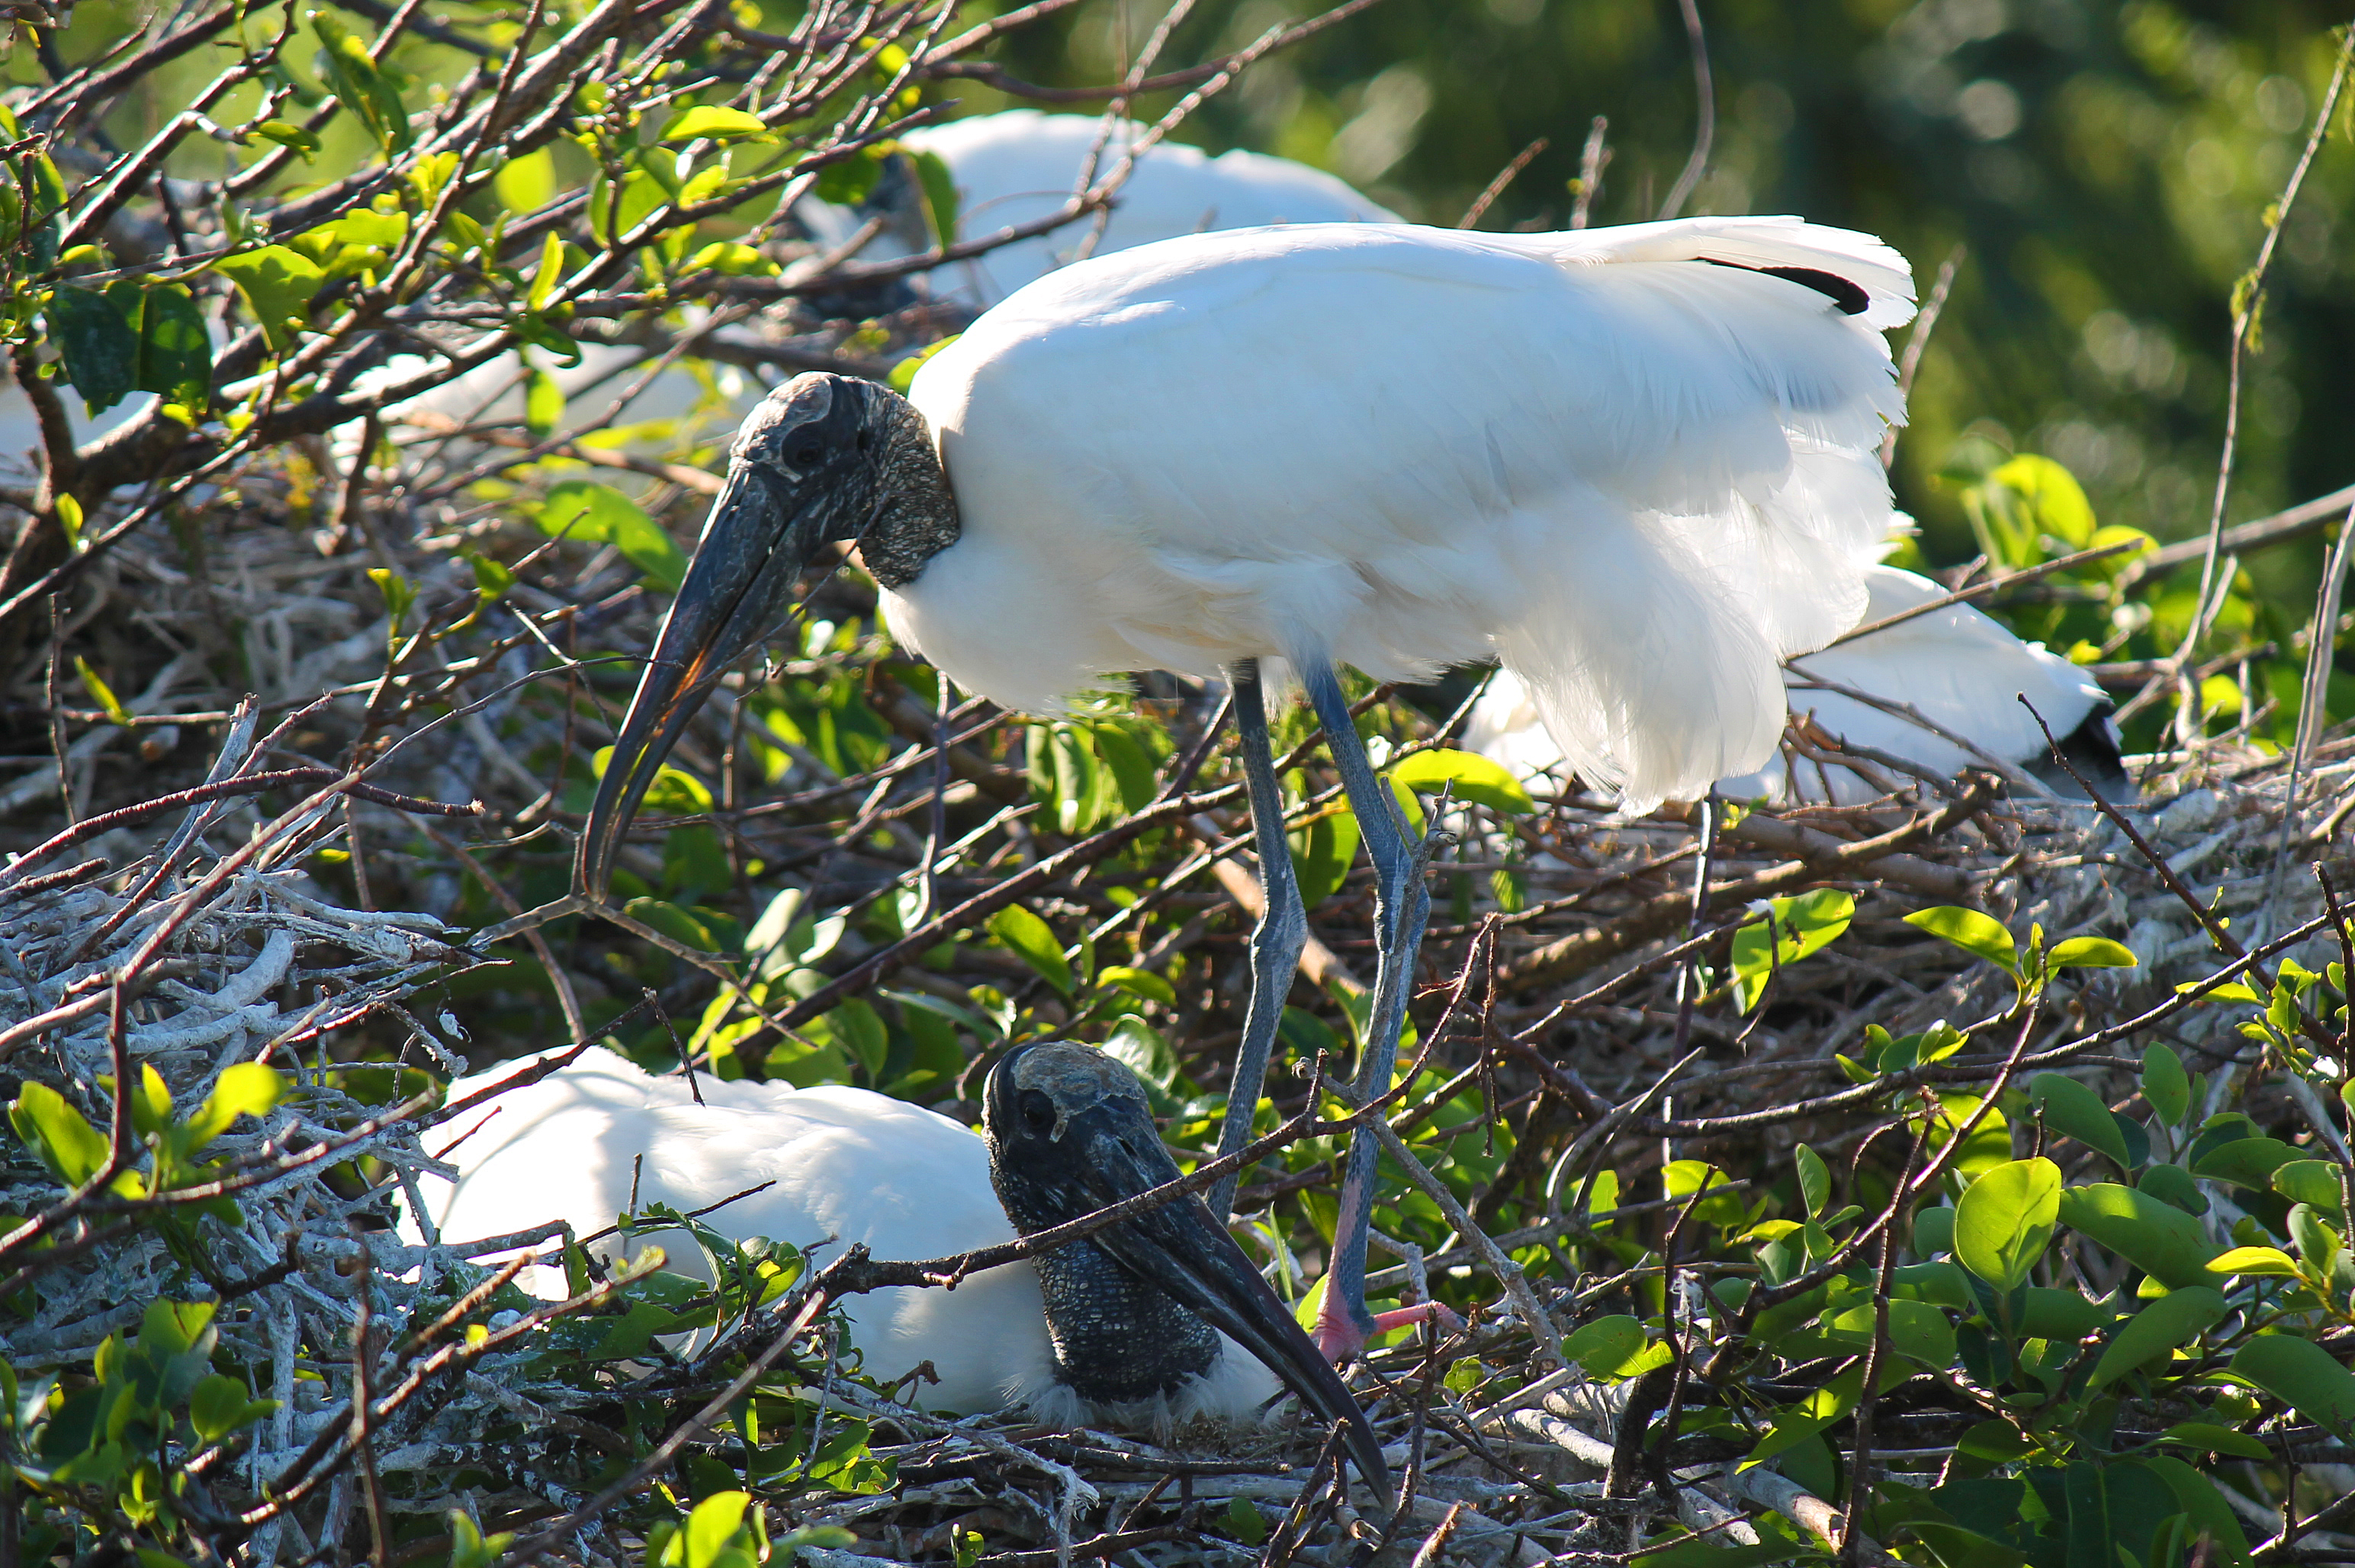 Nesting white wood storks with gray heads in tree